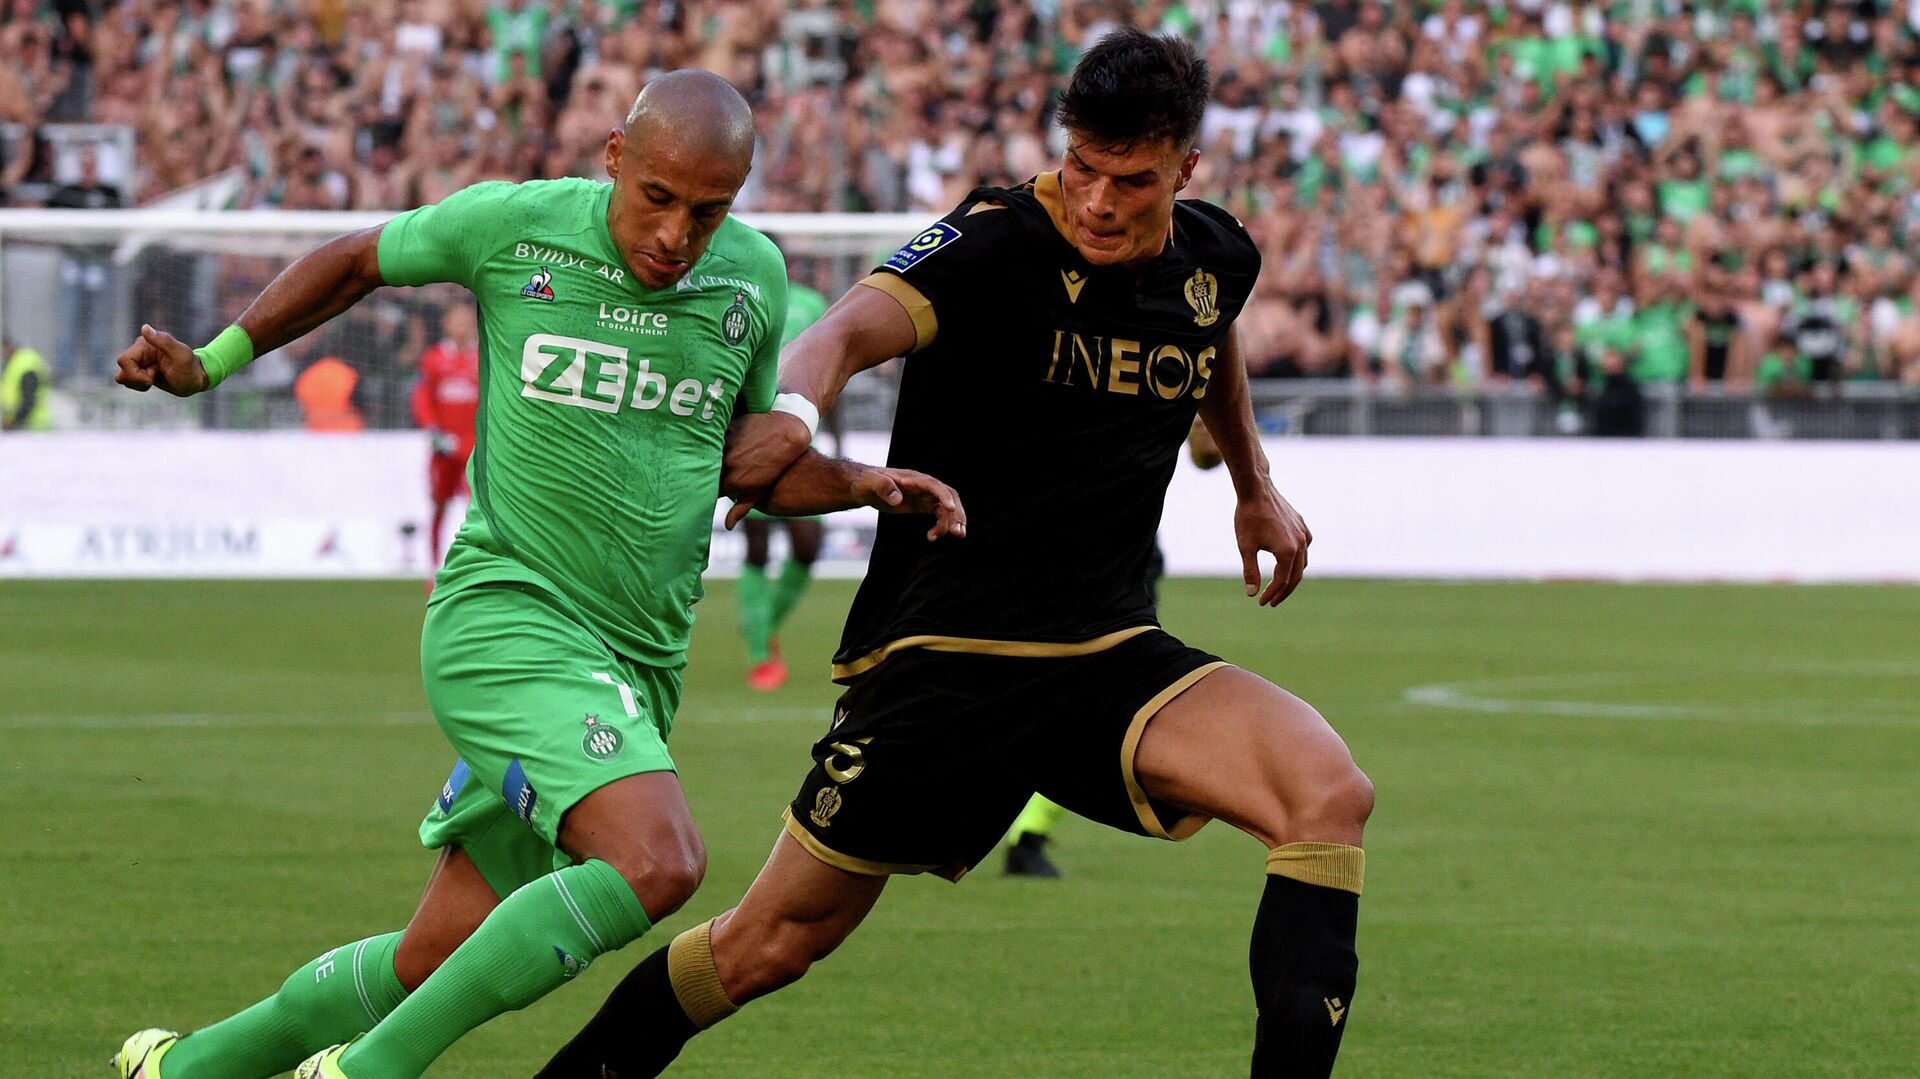 Saint-Etienne's Tunisian forward Wahbi Khazri (L) fights for the ball with Nice's Austrian defender Flavius Daniliuc (R) during the French L1 football match between Saint-Etienne (ASSE) and OGC Nice at The Geoffroy-Guichard Stadium in Saint-Etienne, central France, on September 25, 2021. (Photo by JEAN-PHILIPPE KSIAZEK / AFP) - РИА Новости, 1920, 25.09.2021